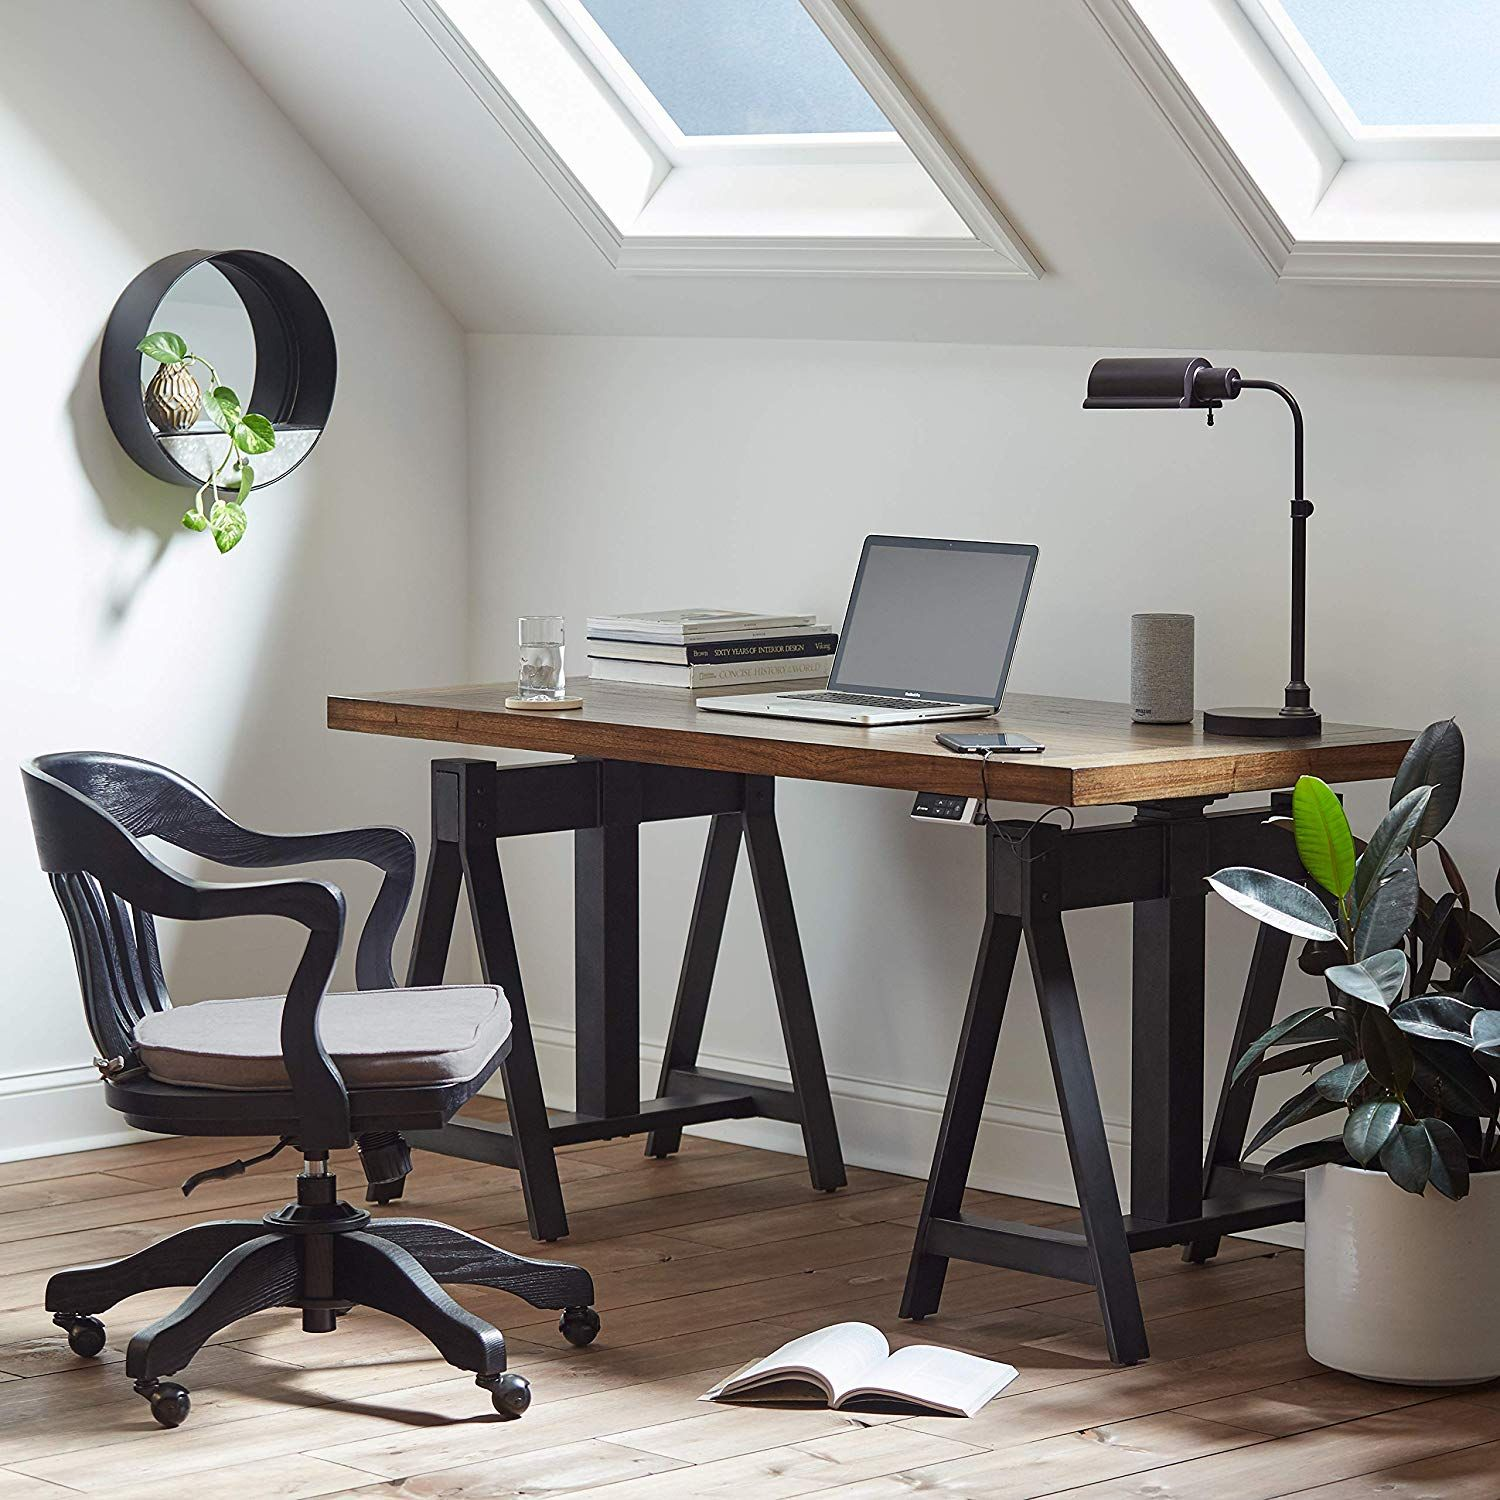 Image of: 16 Best Desks For Small Spaces Computer Desks For Small Spaces With Storage